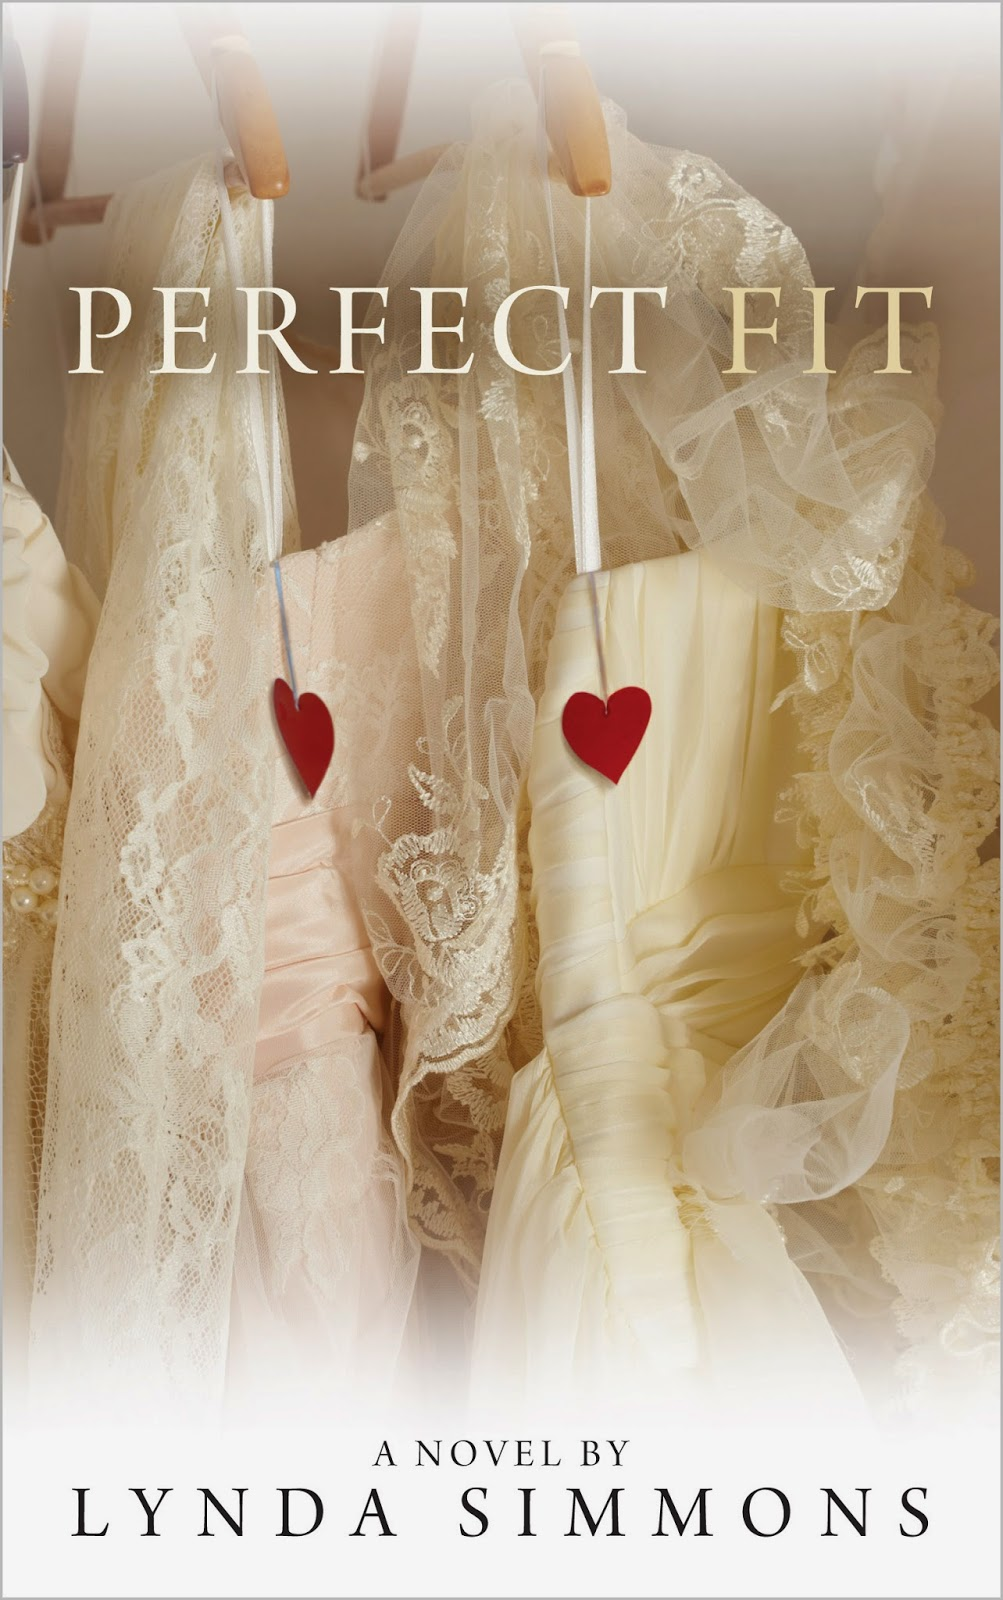 Excerpt from contemporary romantic comedy Perfect Fit by Lynda Simmons